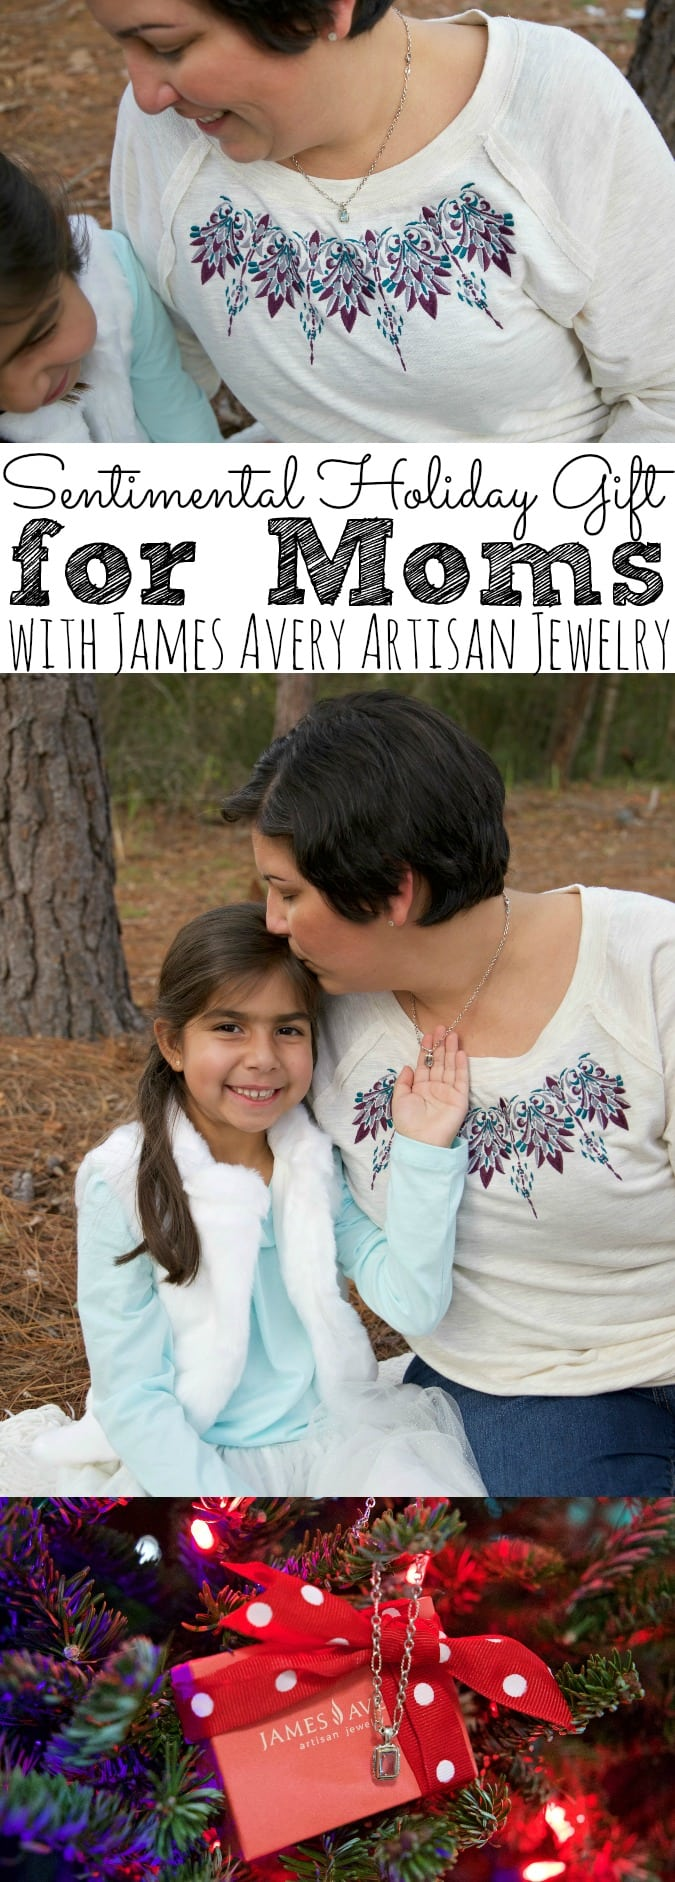 A Sentimental Holiday Gift For Mom With James Avery Artisan Jewelry - Simply Today Life